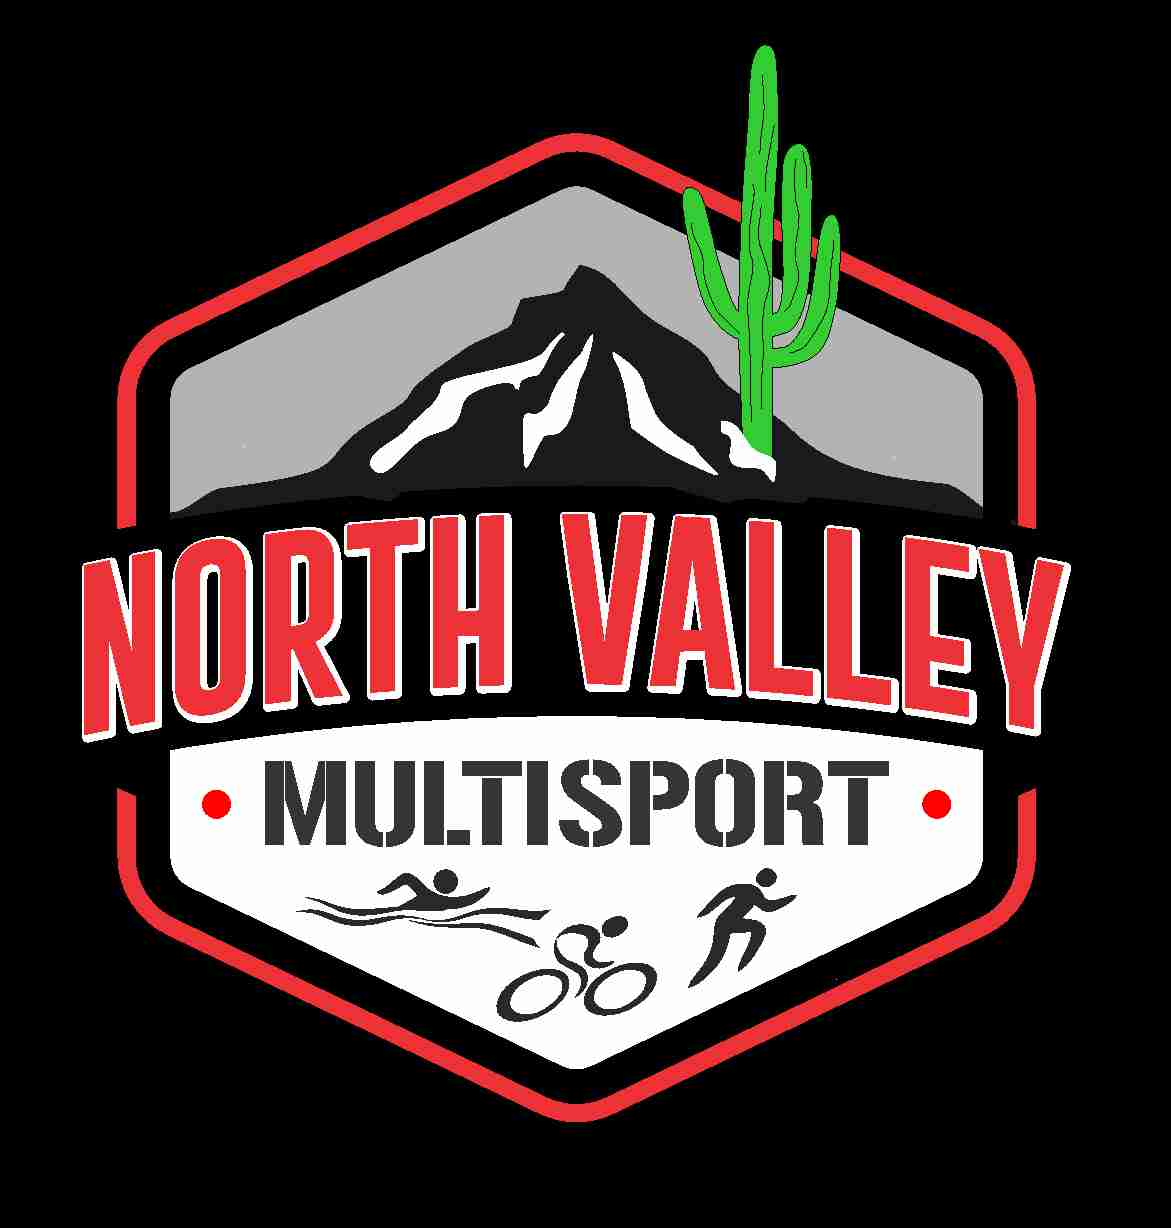 North Valley Multisport